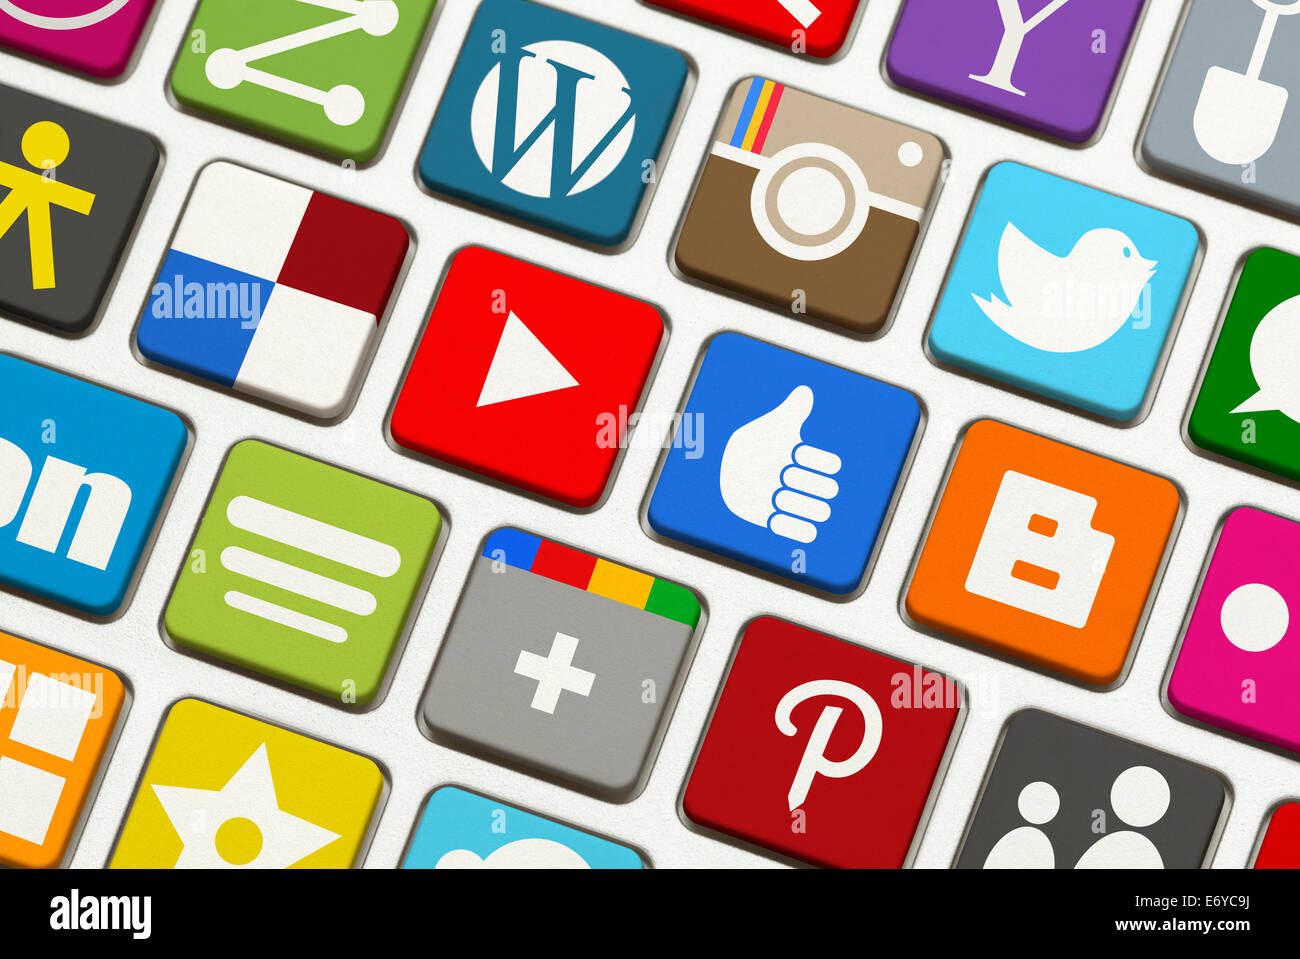 Keyboard with Popular Social Networking Launch Keys. - Stock Image